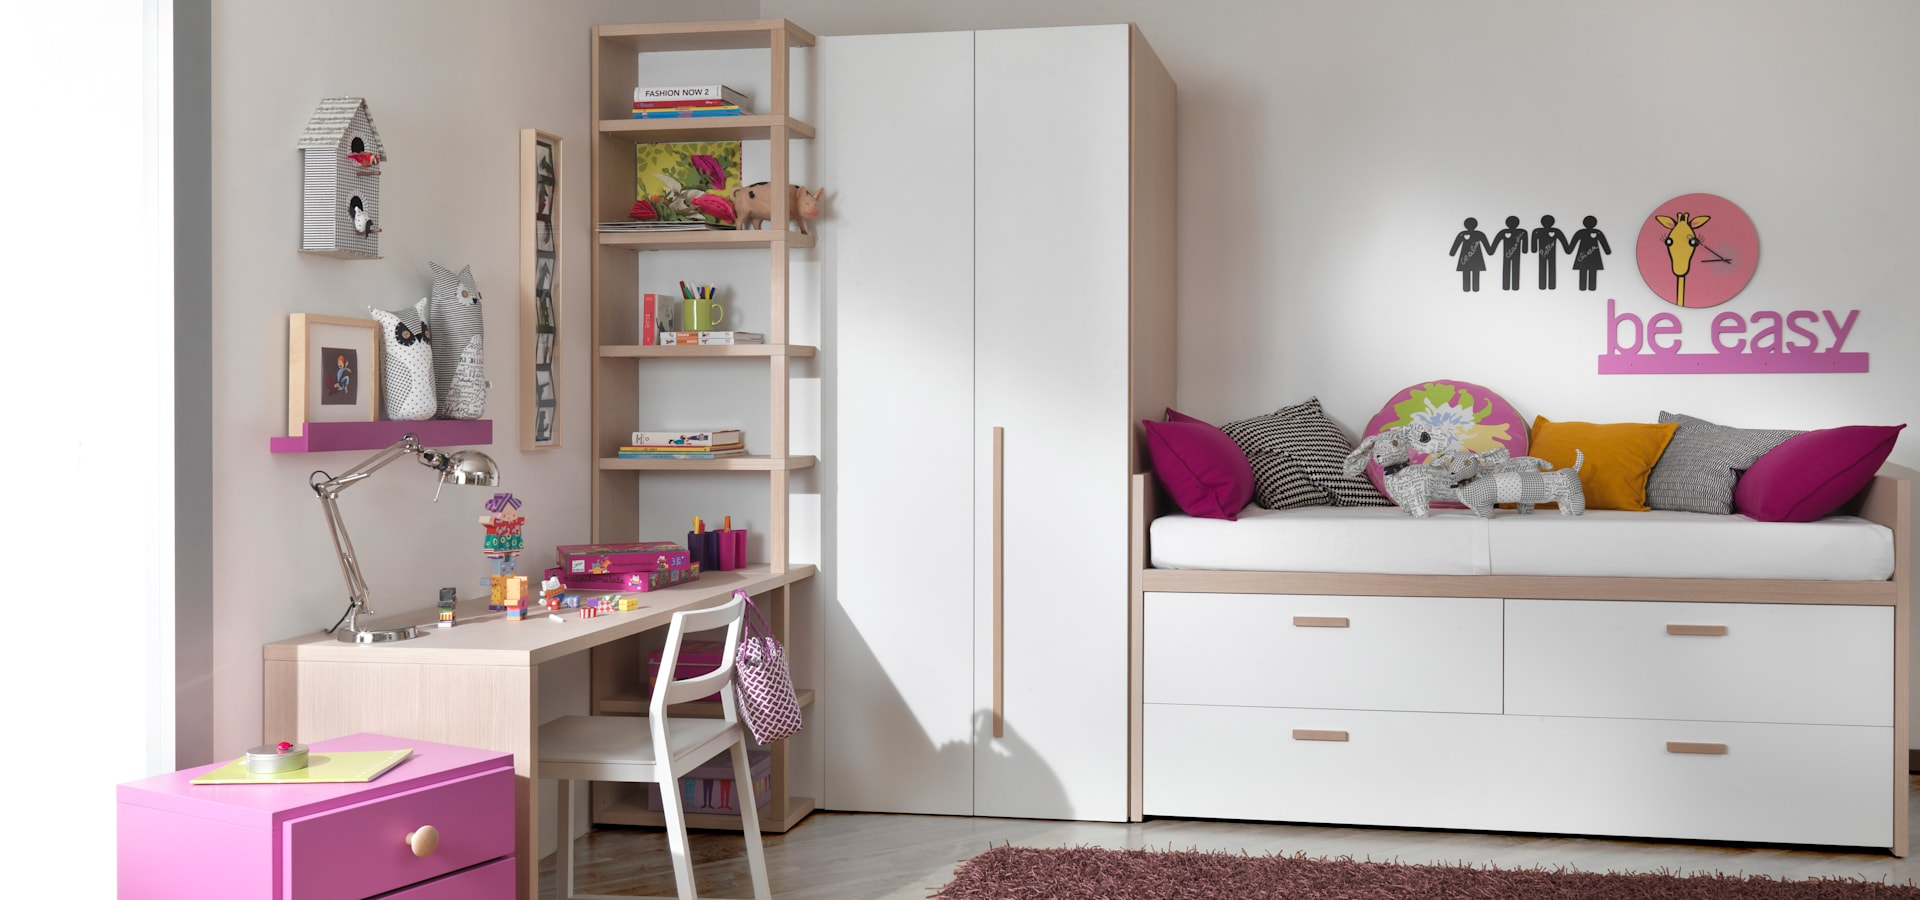 moderner stauraum im kinderzimmer profesjonalista mobimio r ume f r kinder homify. Black Bedroom Furniture Sets. Home Design Ideas